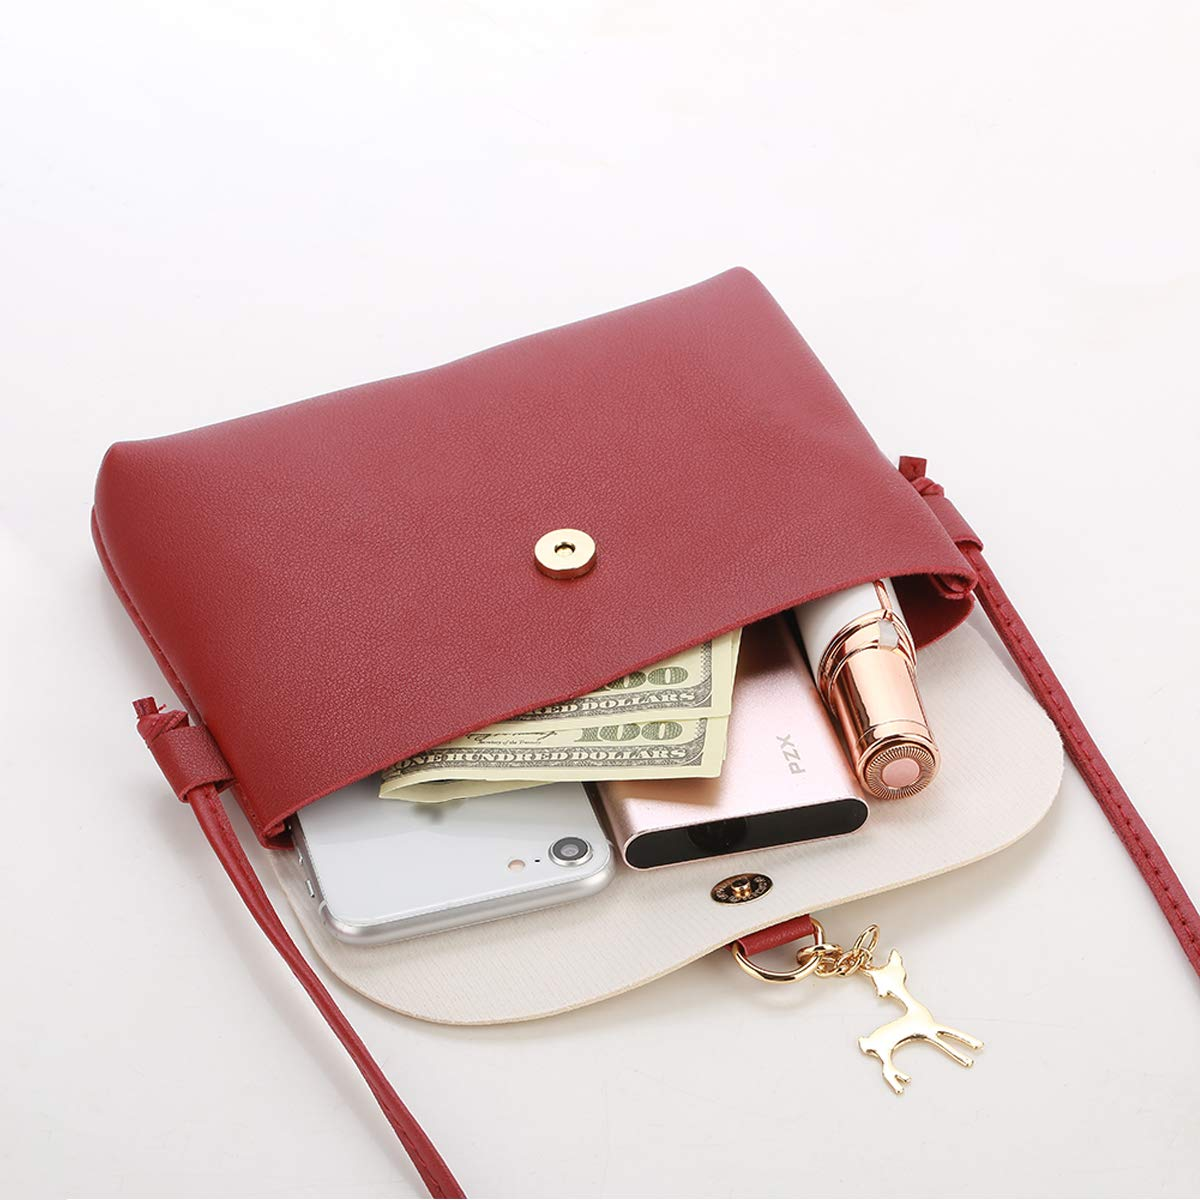 Small Crossbody Purse for Women With Pendant,PU Leather Crossbody Bag With Strap Cell Phone Bag for Girl,Red by Lanling (Image #3)